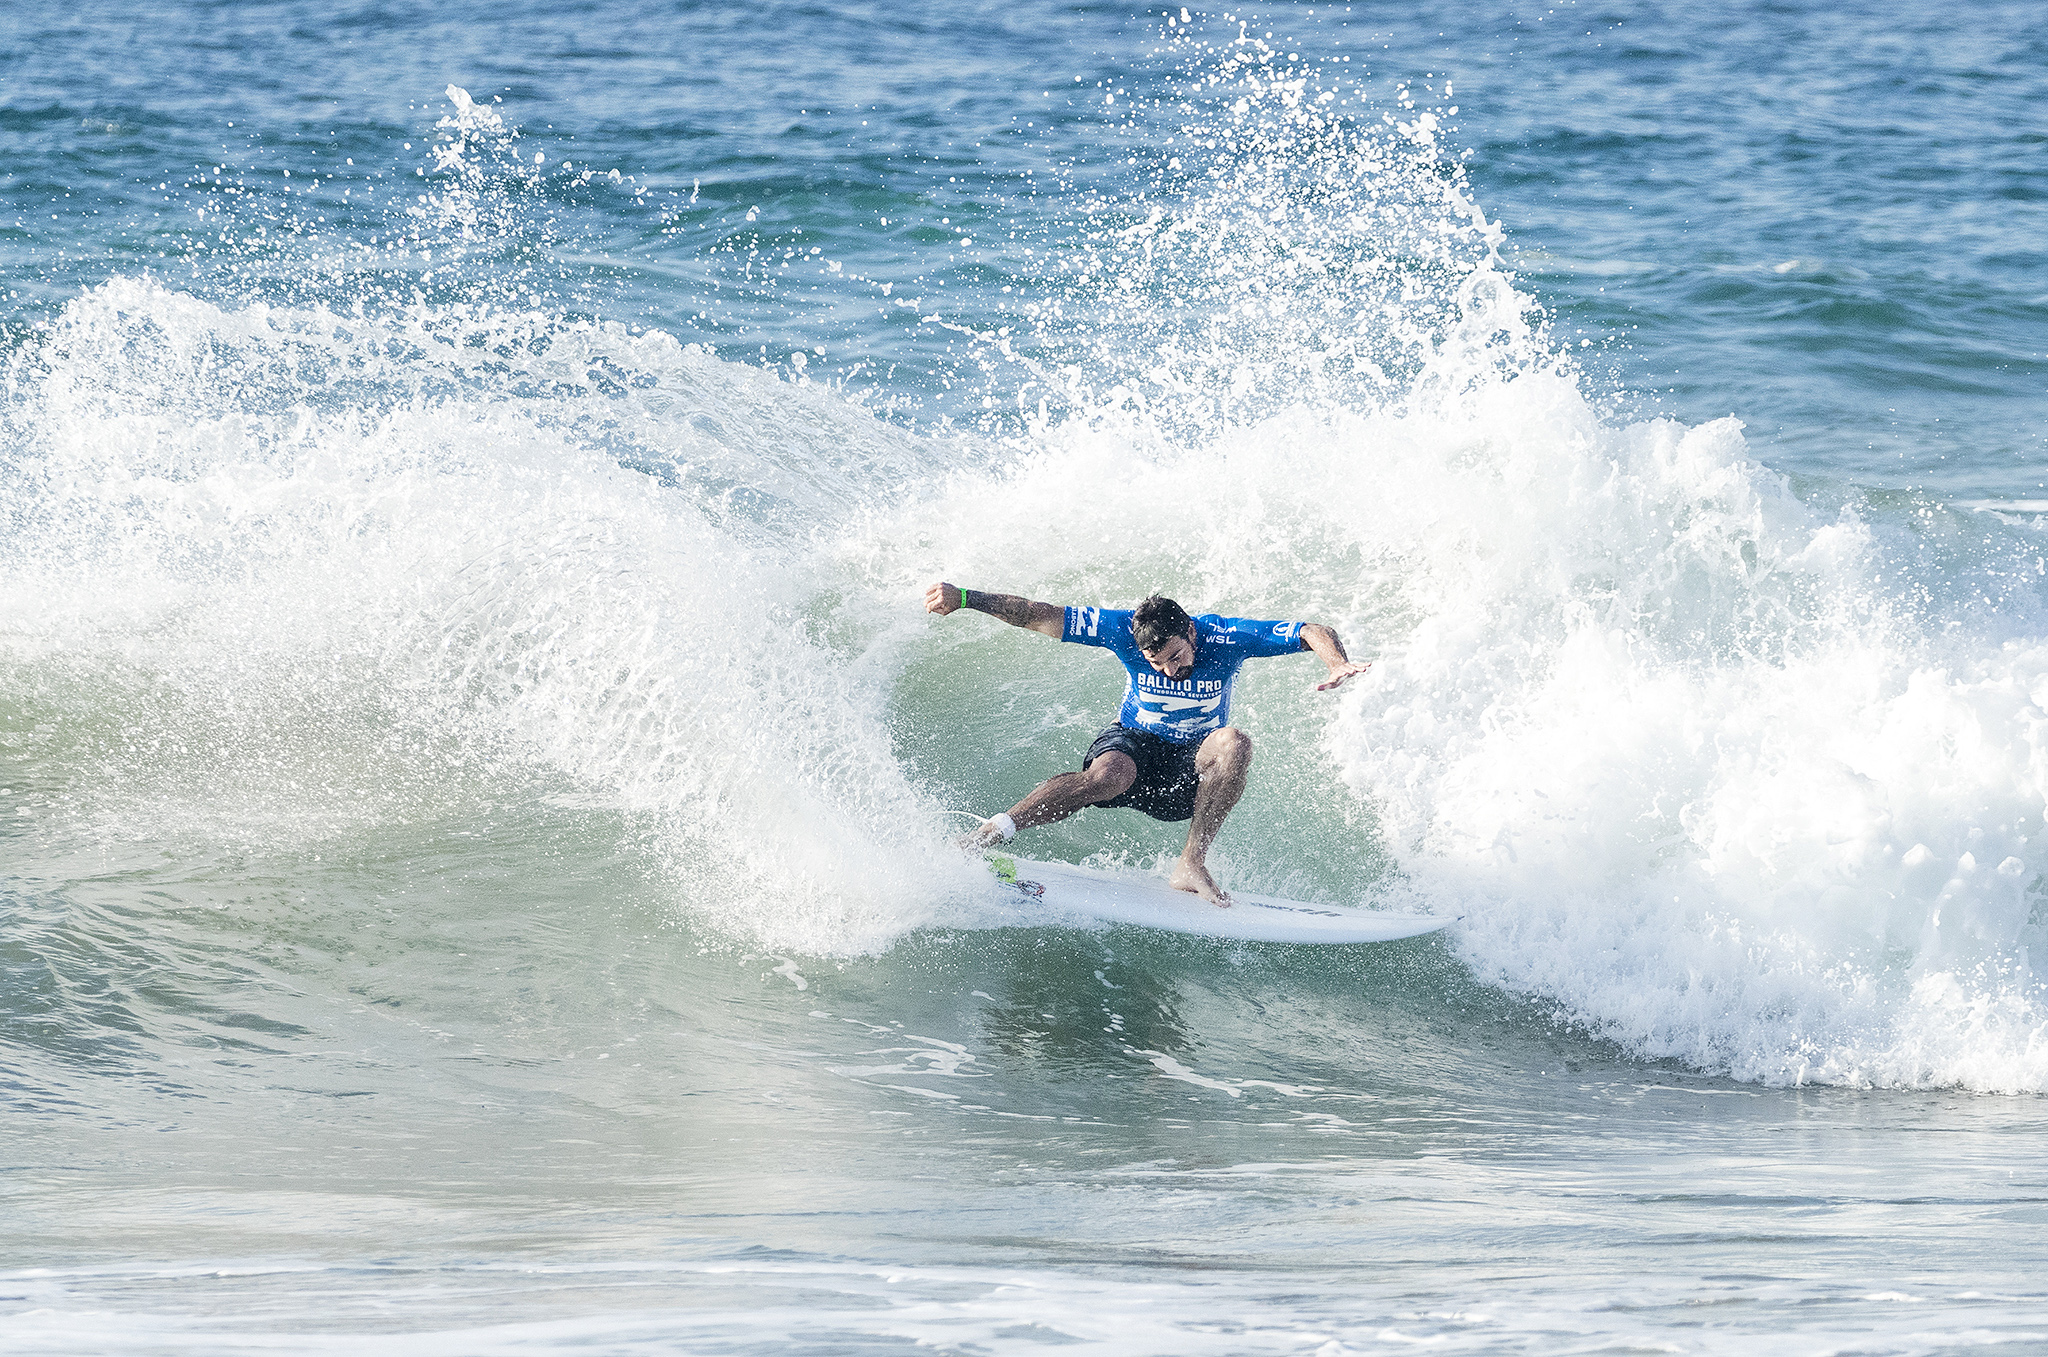 Willian Cardoso of Brazil advances to the Semifinals of the Ballito Pro presented by Billabong after winning Quarterfinal Heat 4 at Willard Beach, Ballito, South Africa.